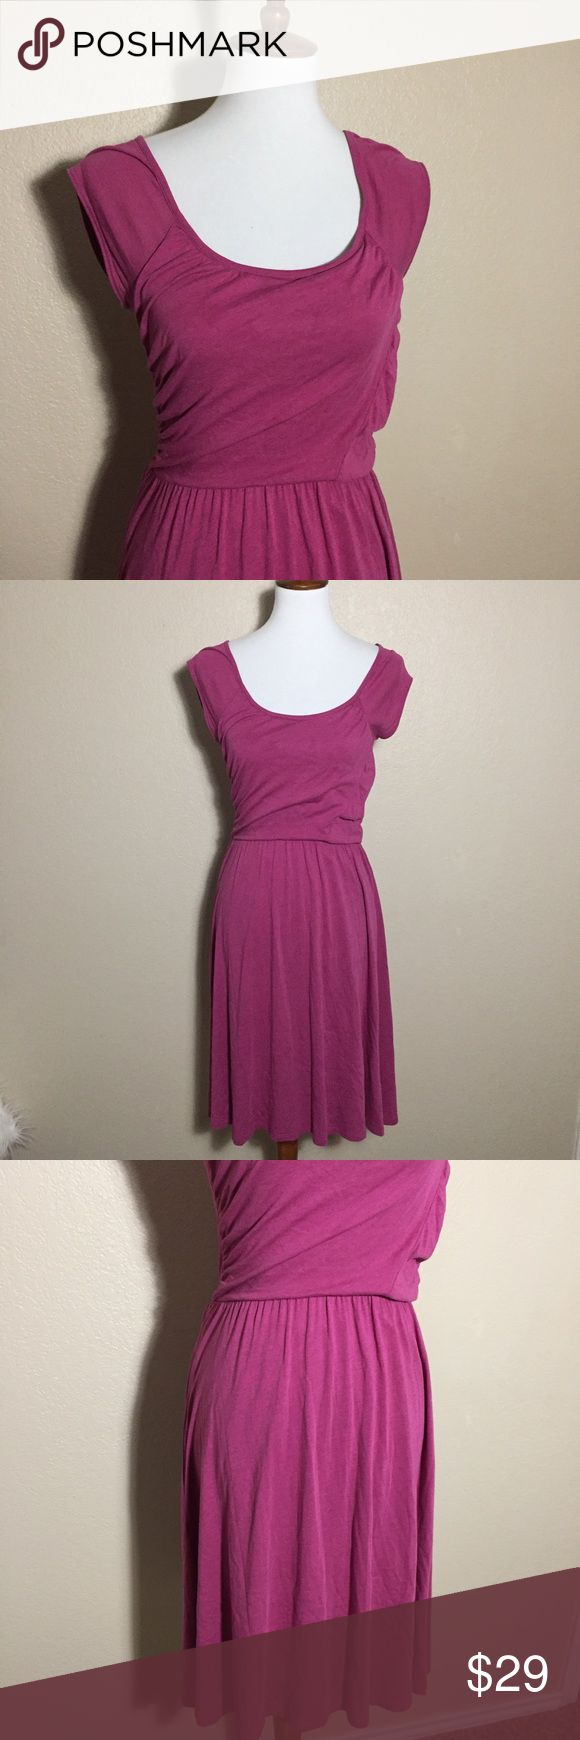 {Garnet Hill} Fuchsia Fit Flare Midi Length Dress Used in excellent condition. No Trades / No PayPal /  Smoke-Free Home / Ask Questions! / No Model Requests Please / Like what you see but dont like the price? MAKE ME AN OFFER! Garnet Hill Dresses Midi